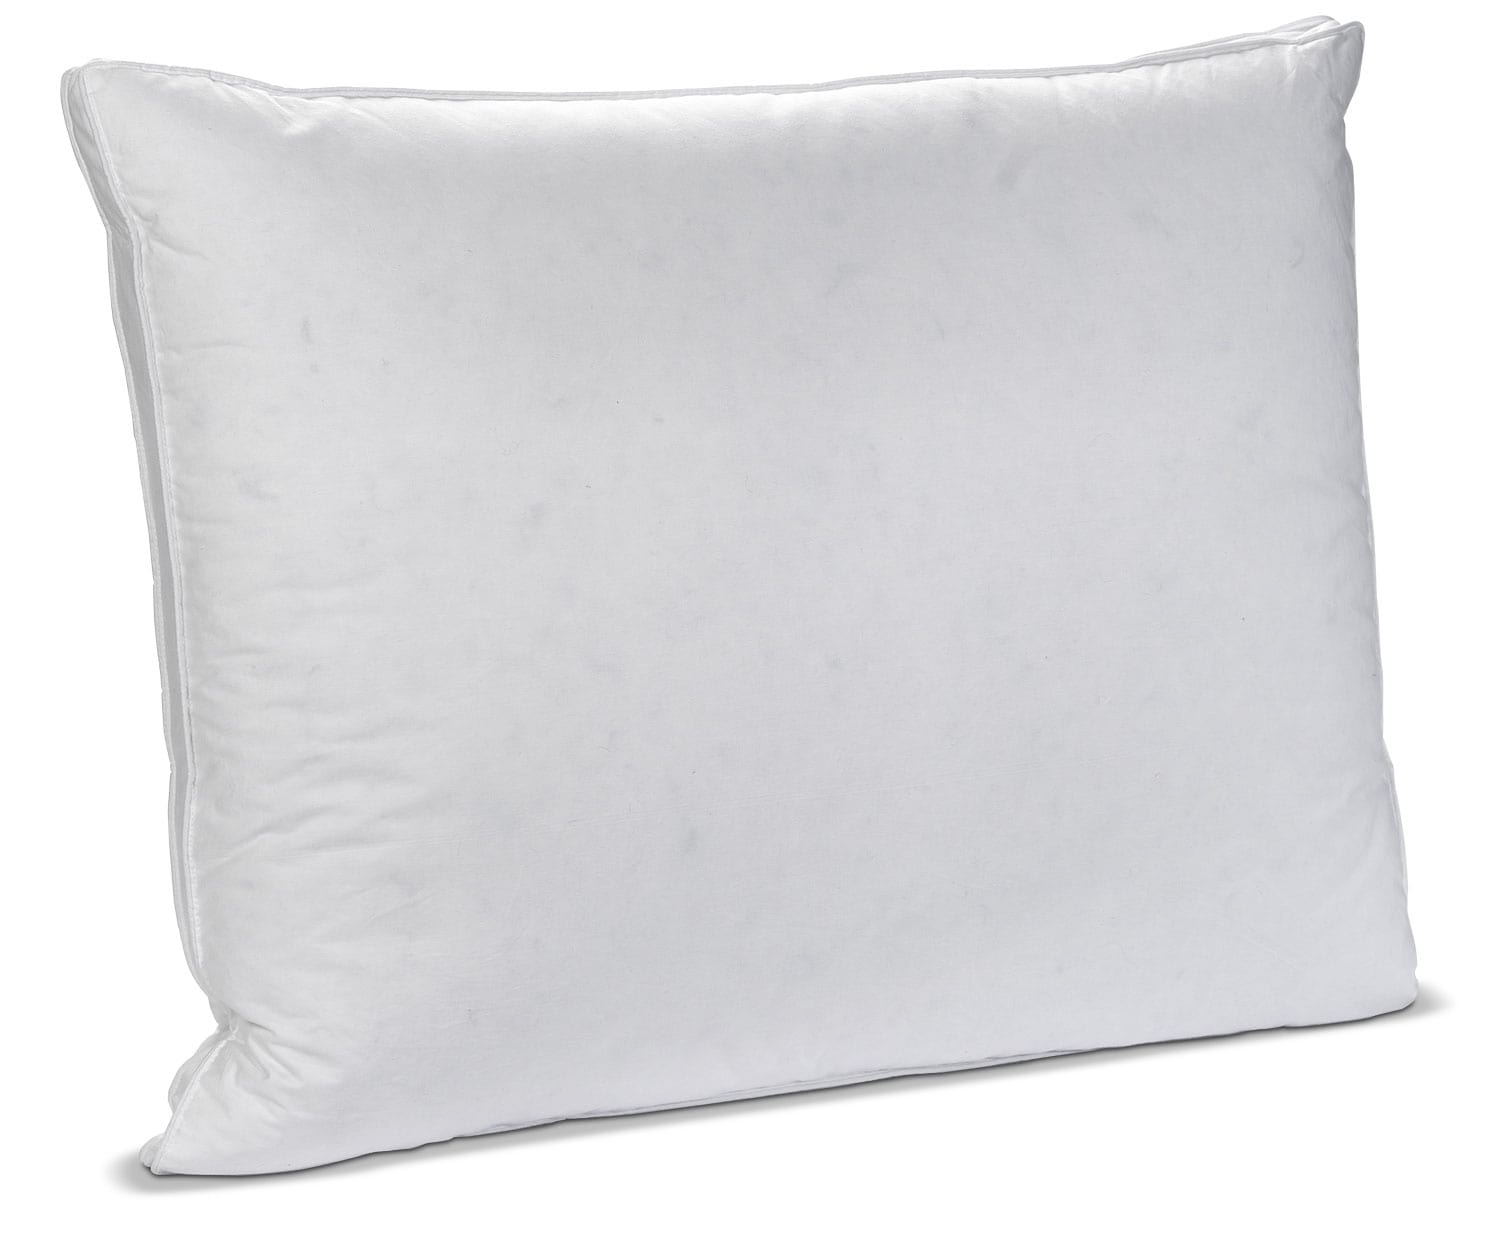 Mattresses and Bedding - Ergo Down Standard Pillow